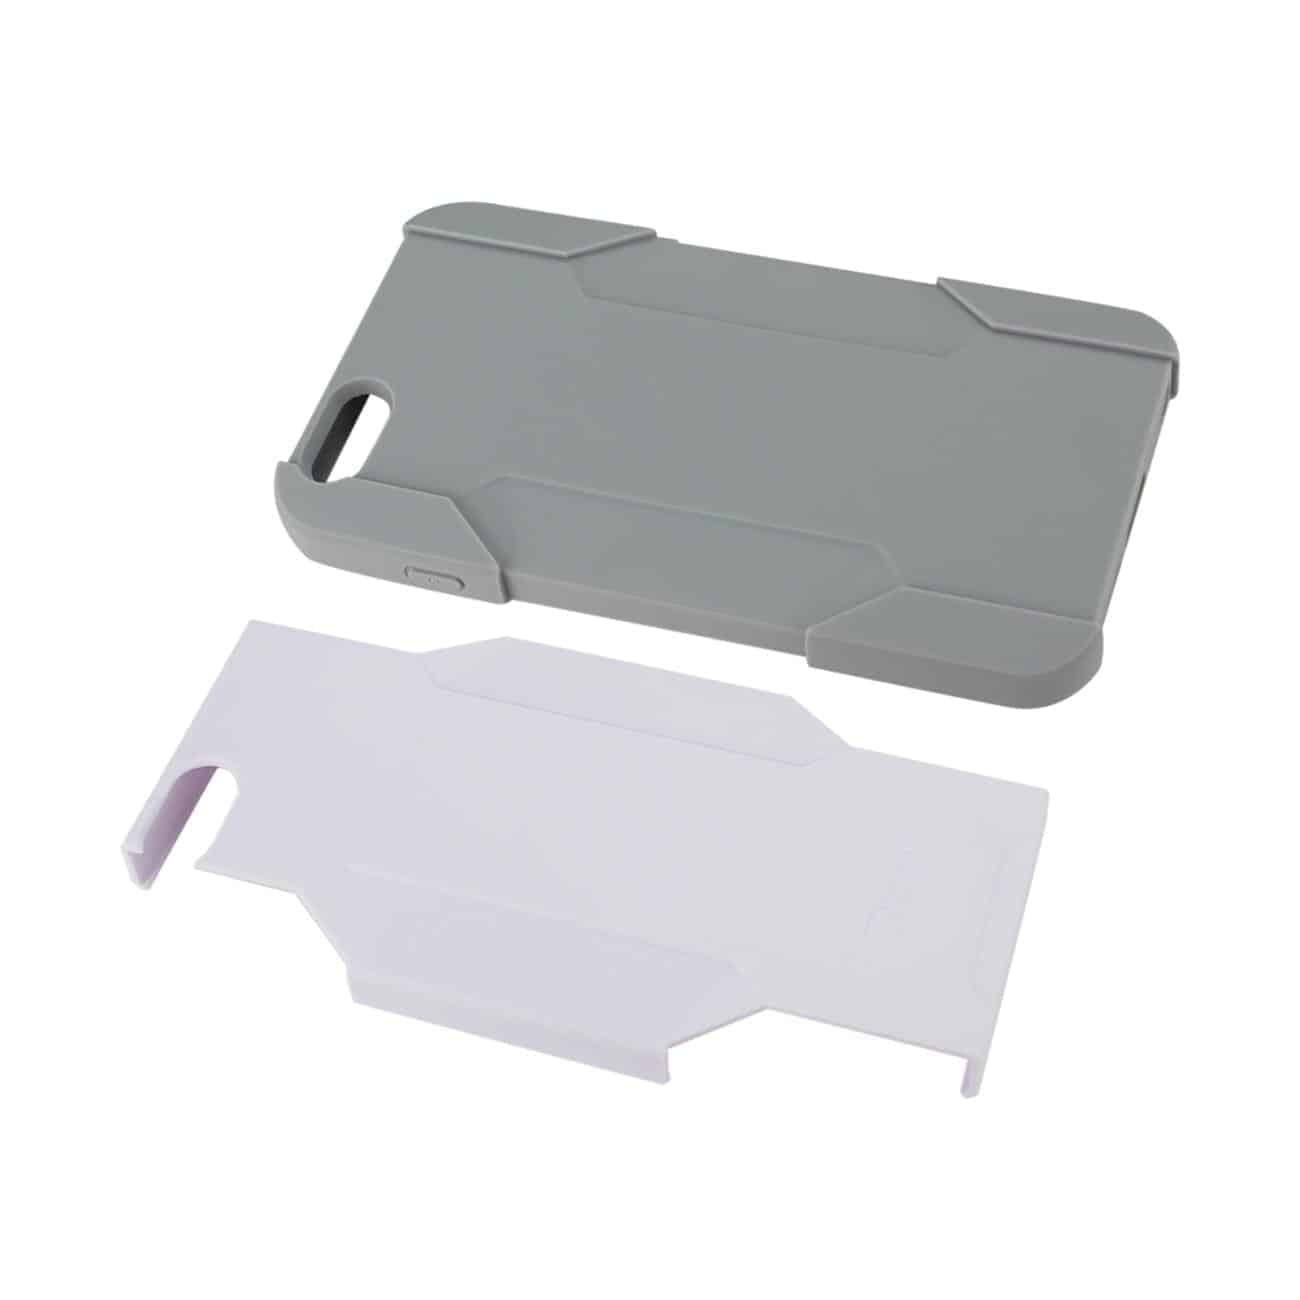 IPHONE 6 PLUS HYBRID HEAVY DUTY HOLSTER COMBO CASE IN GRAY WHITE